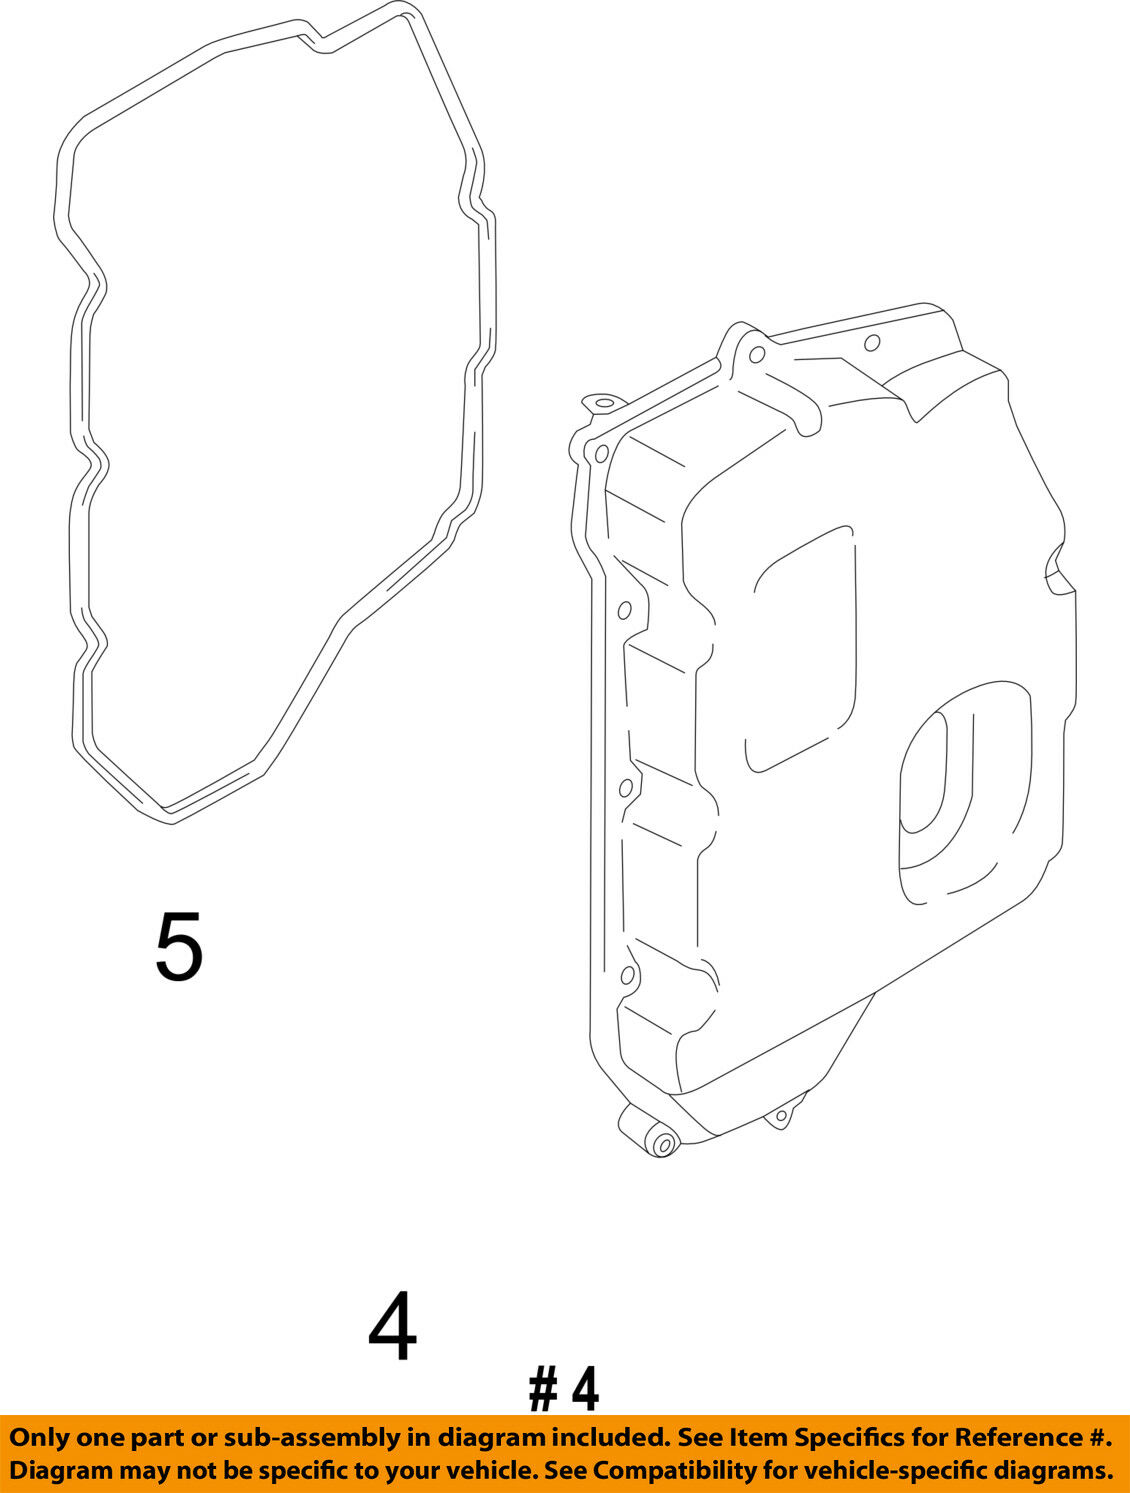 Ford oem transaxle parts side cover cv6z7g004a for sale